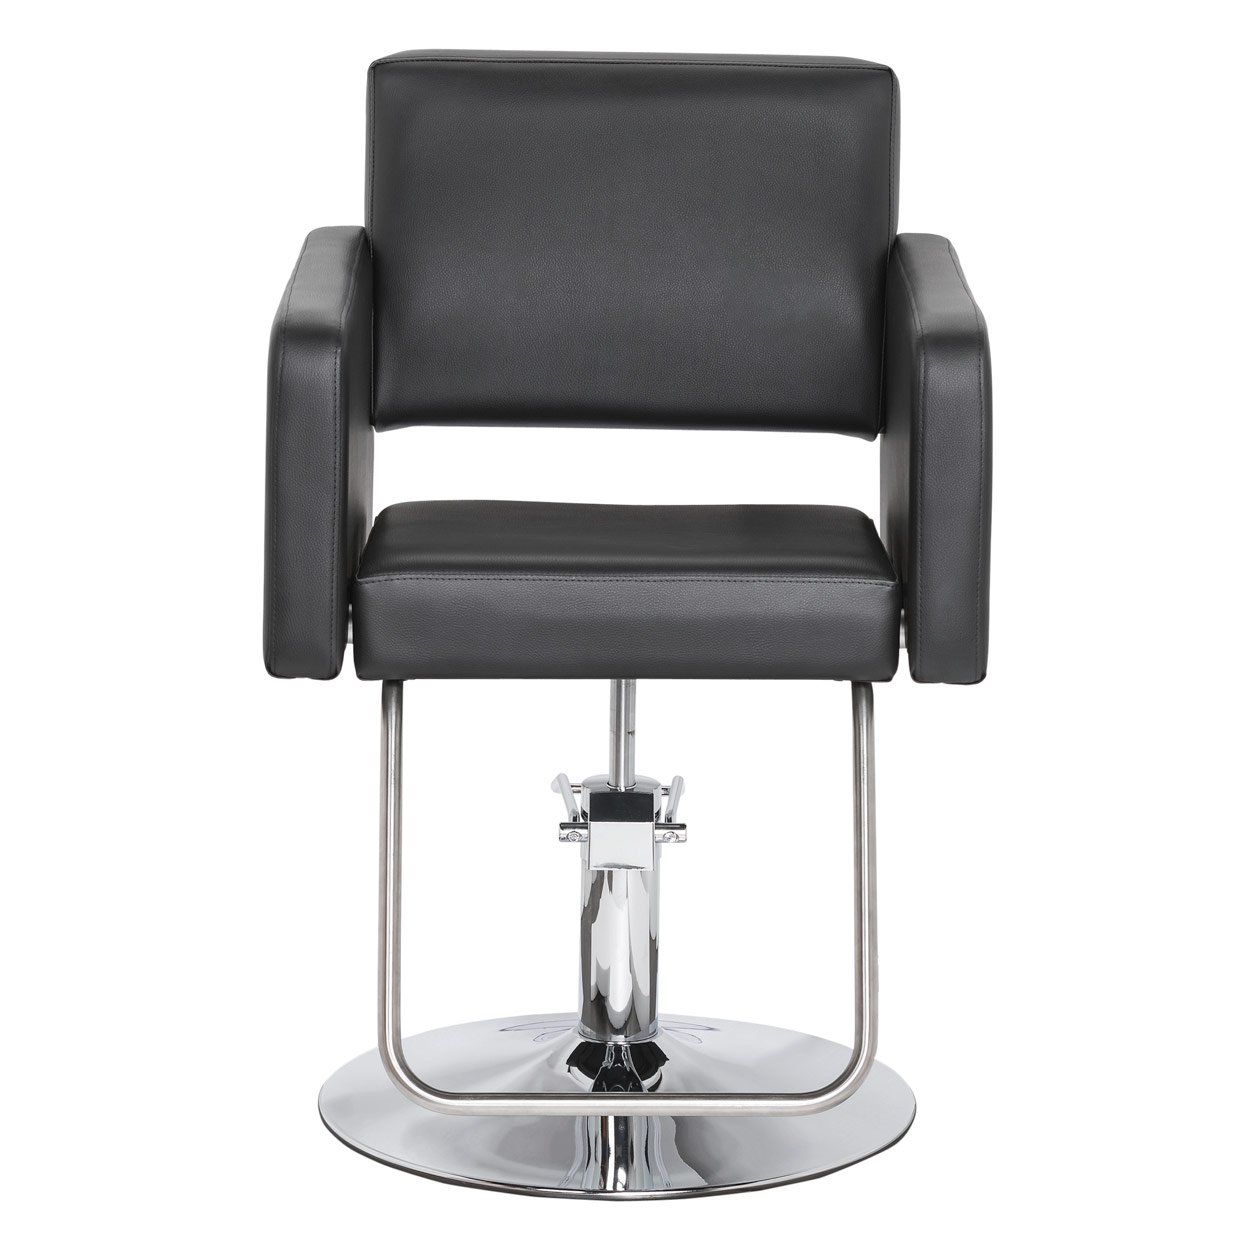 Modin Hair Salon Styling Chair alternative product image 1